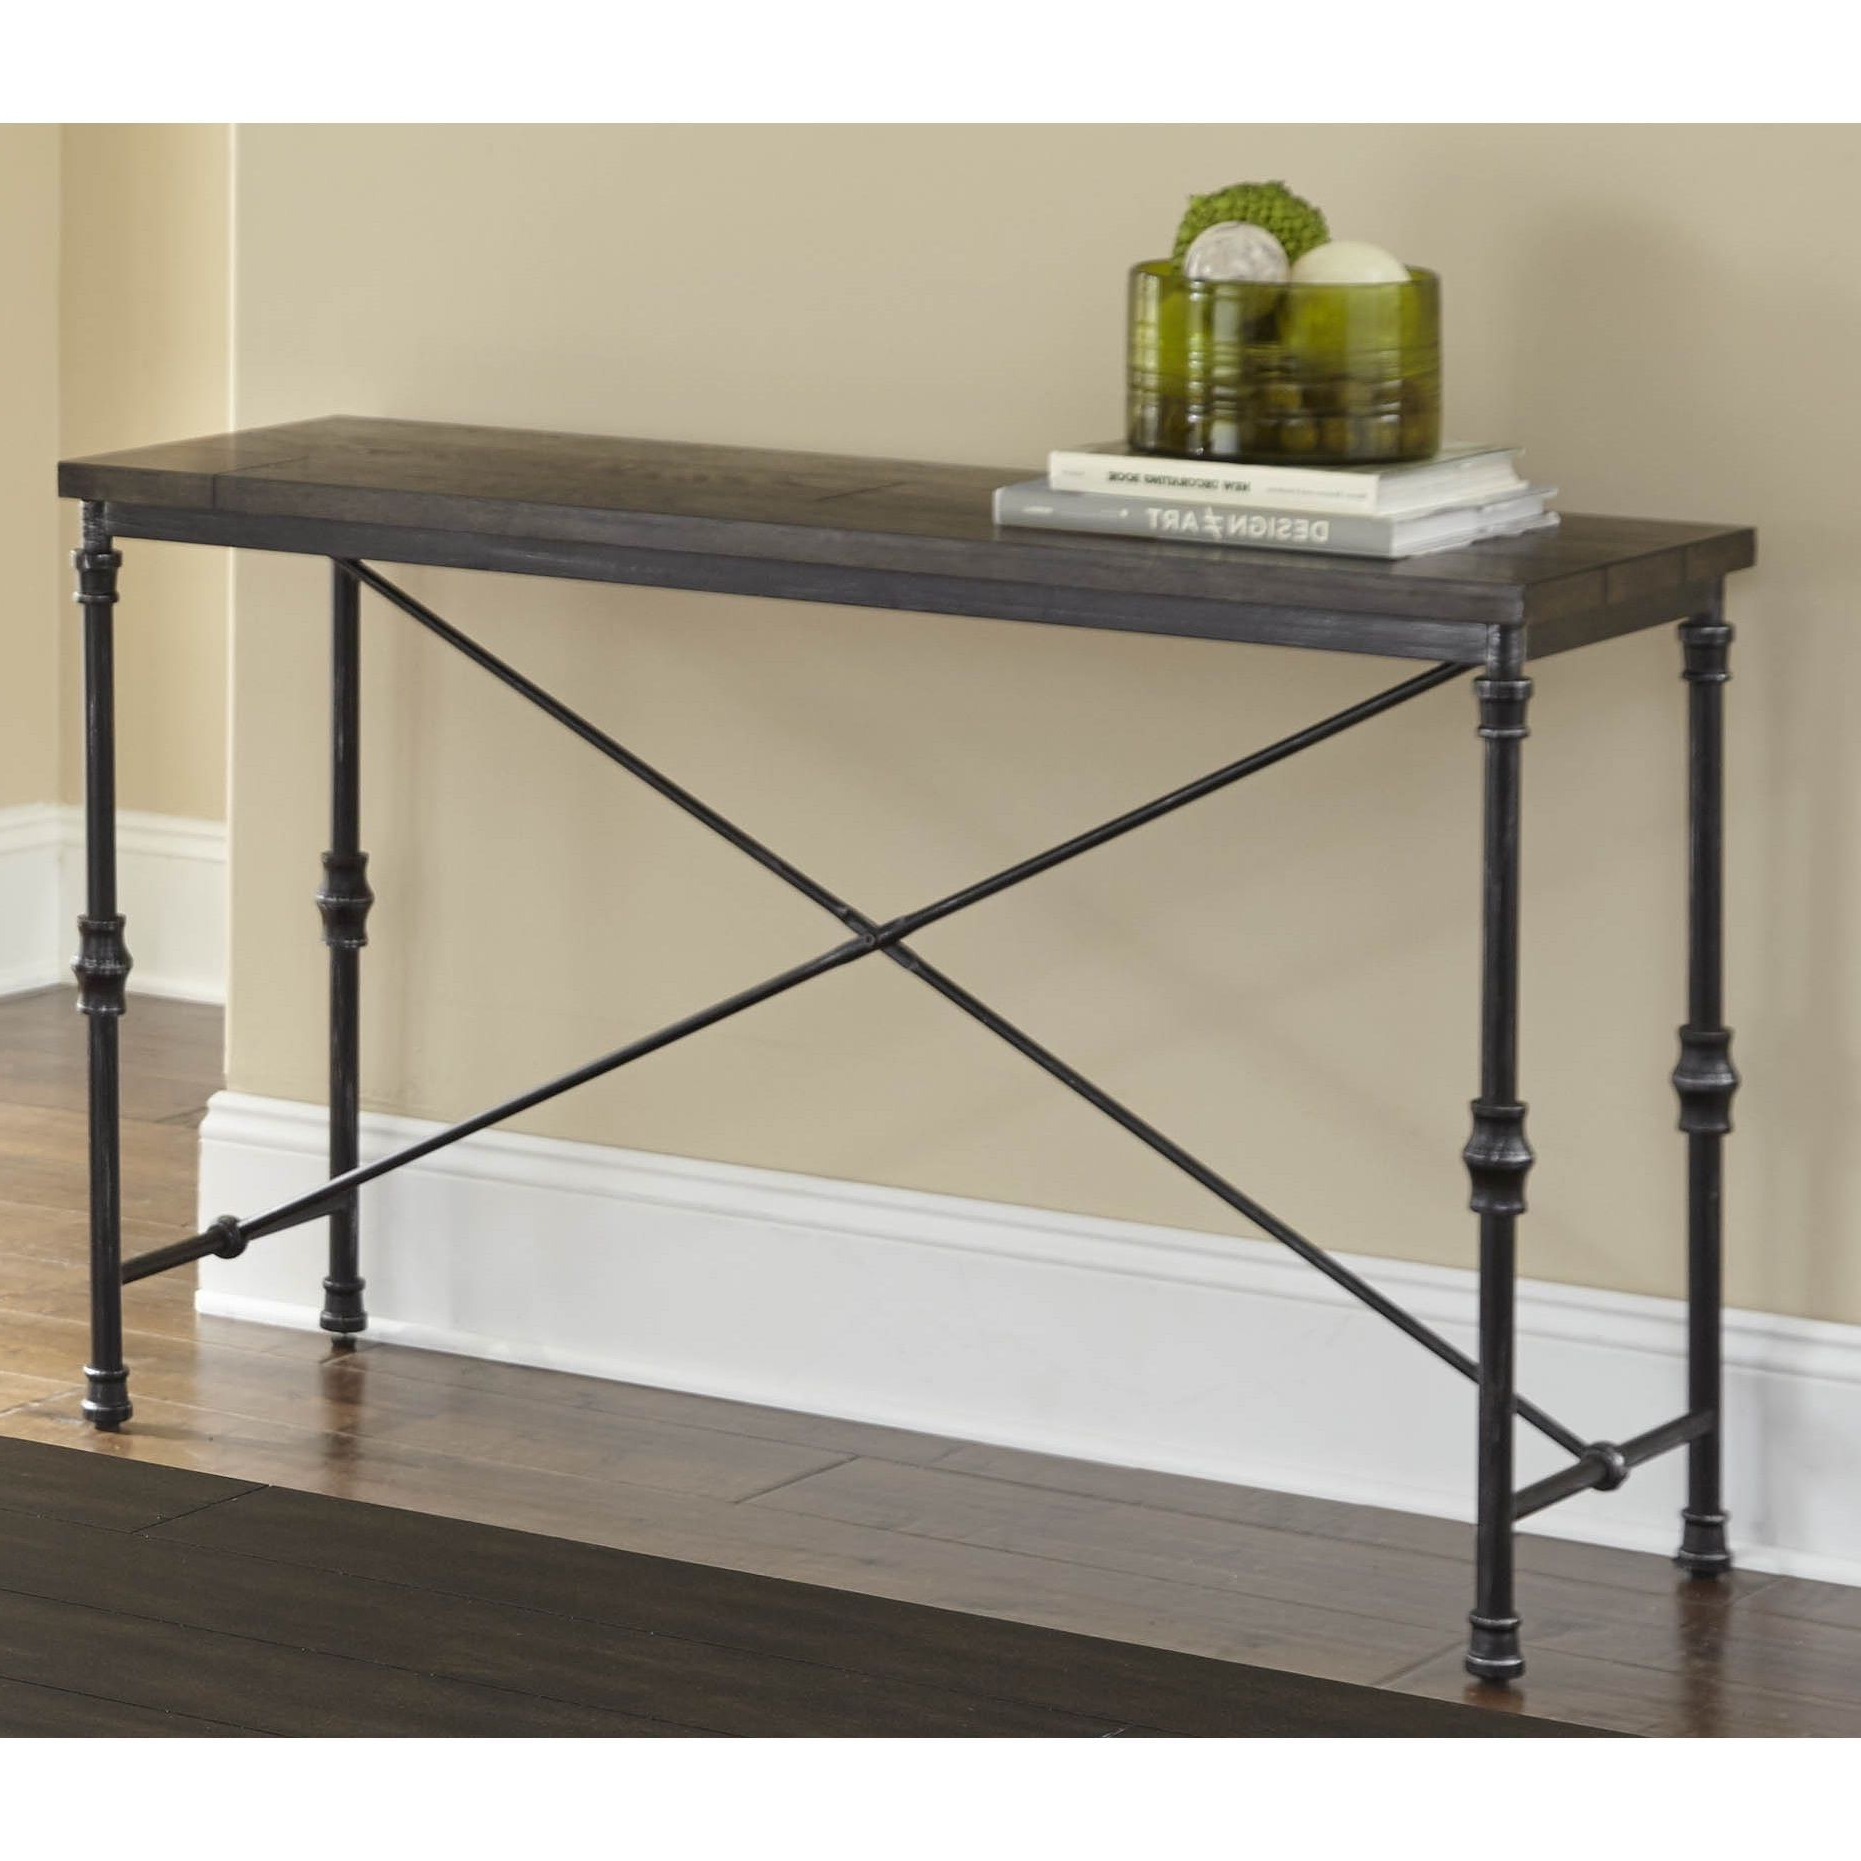 2017 Greyson Living Loring Sofa Table, Grey (View 6 of 20)